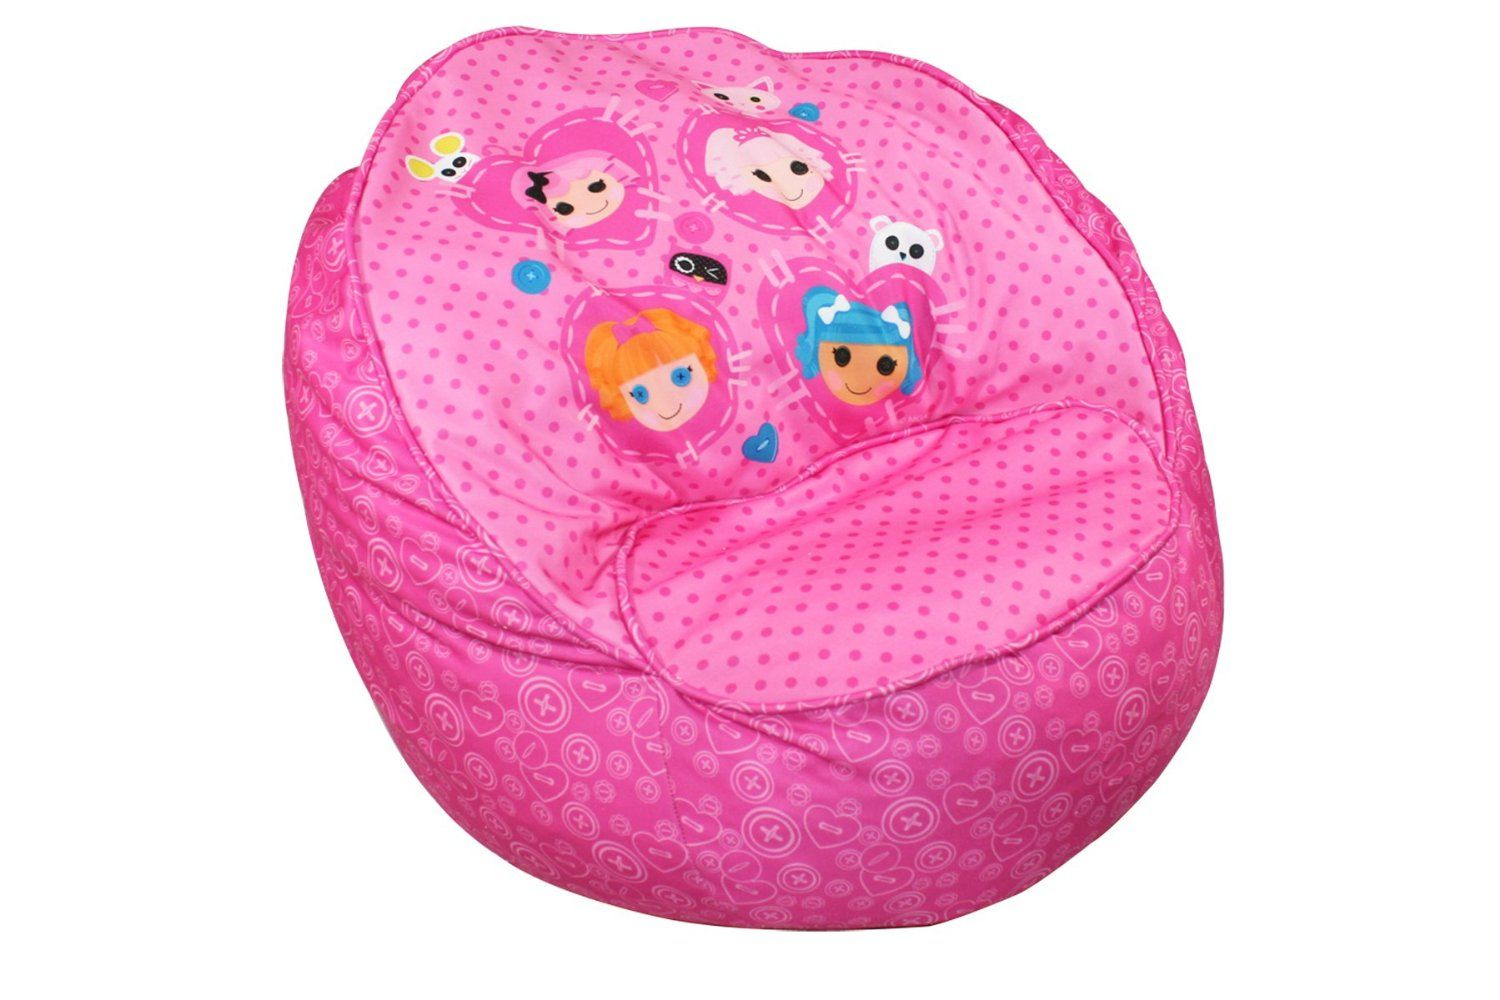 Swell Lalaloopsy Bean Chair Lalaloopsy Toddler Bean Bag Chair Ocoug Best Dining Table And Chair Ideas Images Ocougorg